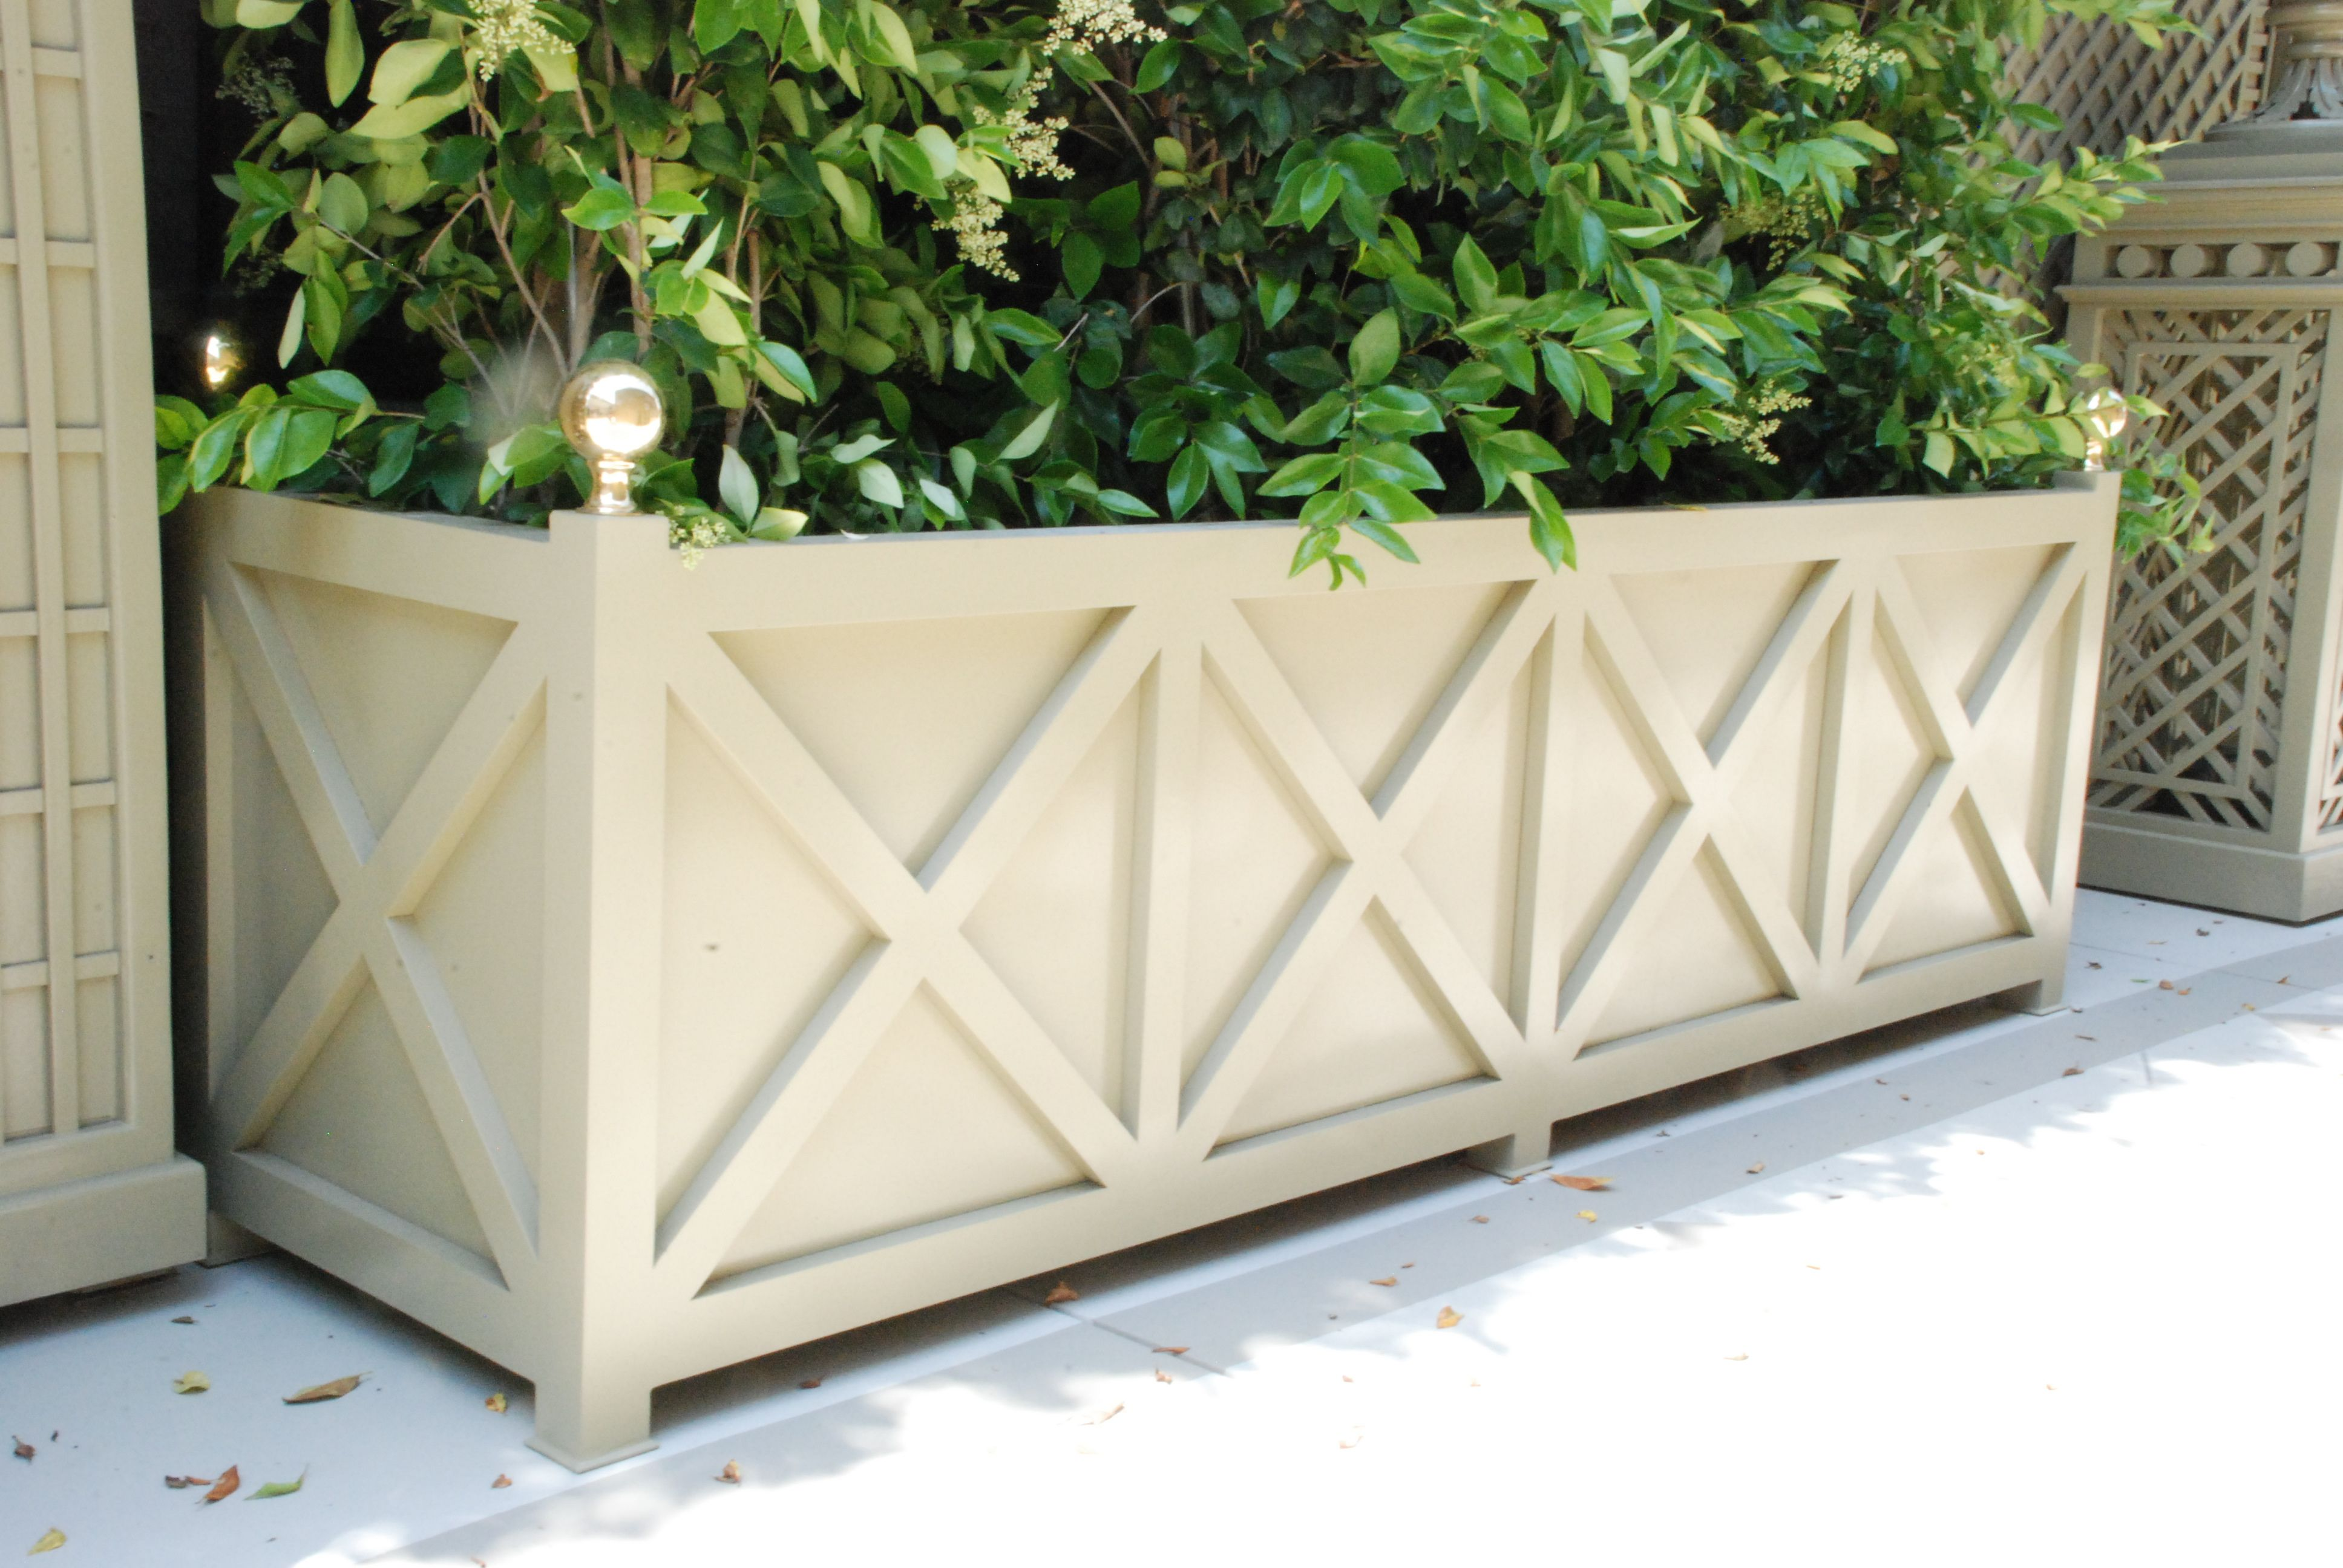 aluminum planters | accents of france - treillage | outdoor life in